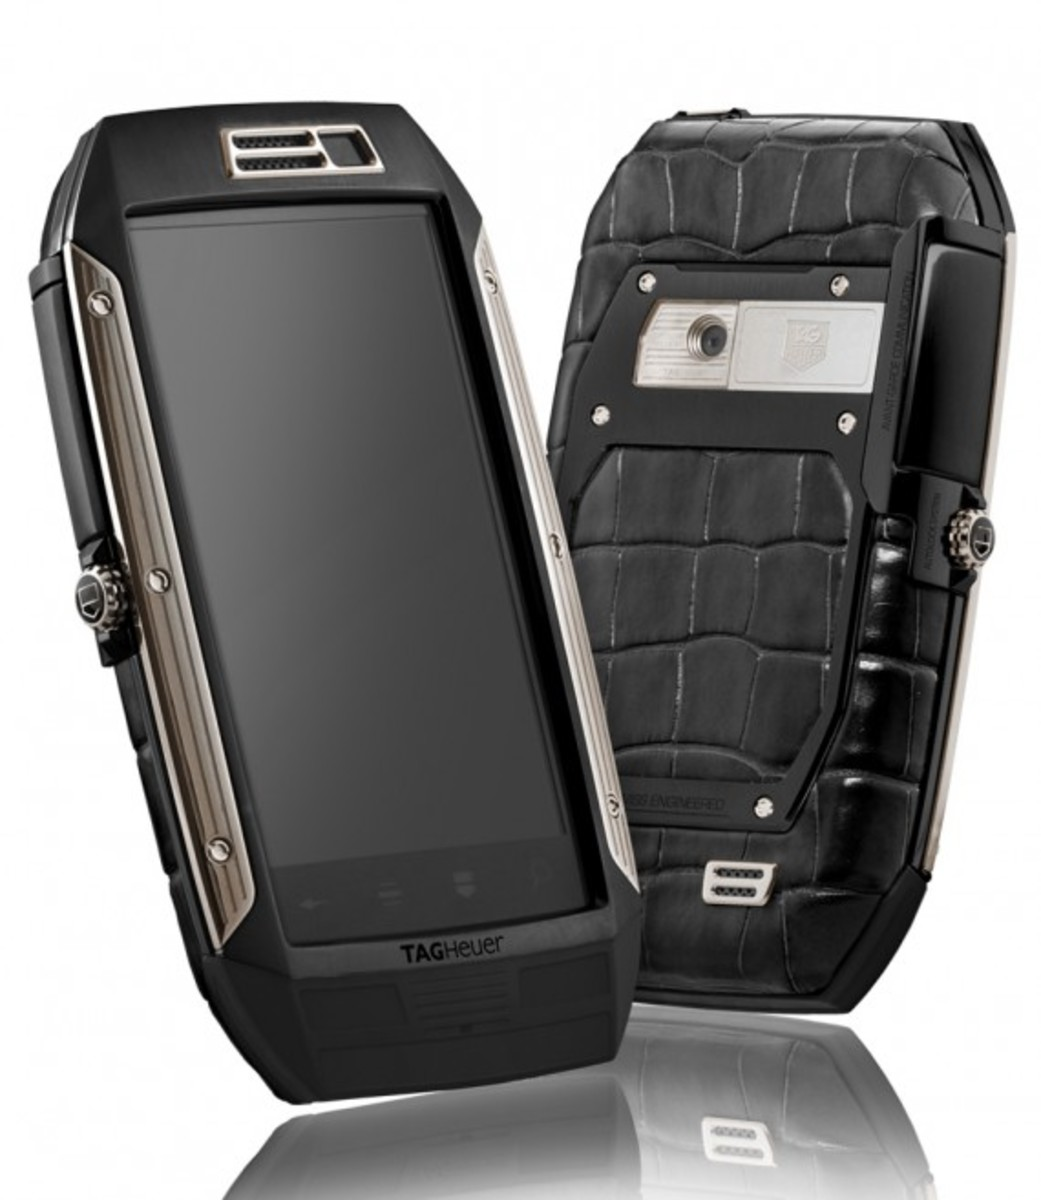 tag-heuer-link-mobile-phone-07